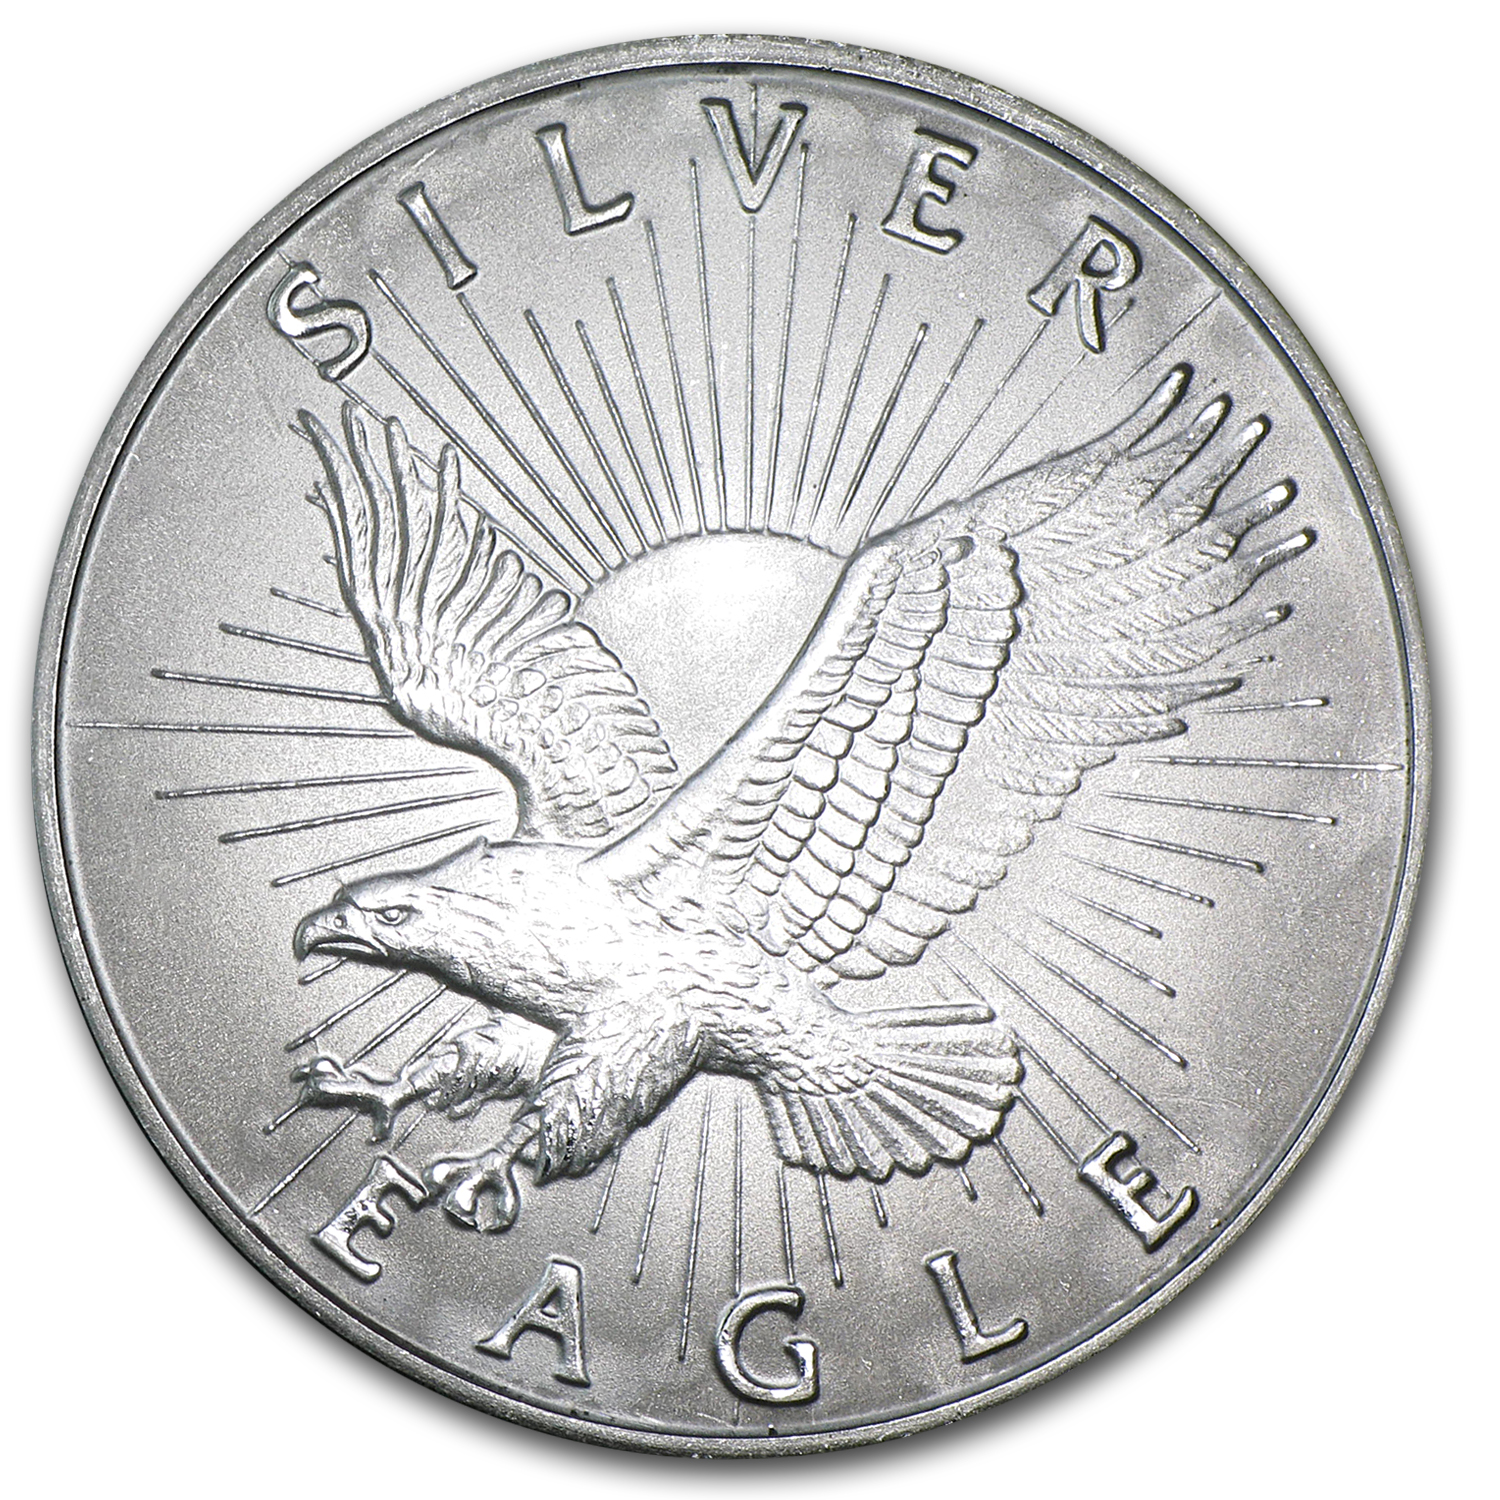 1 oz Silver Rounds - Sunshine Mint (Vintage Design)